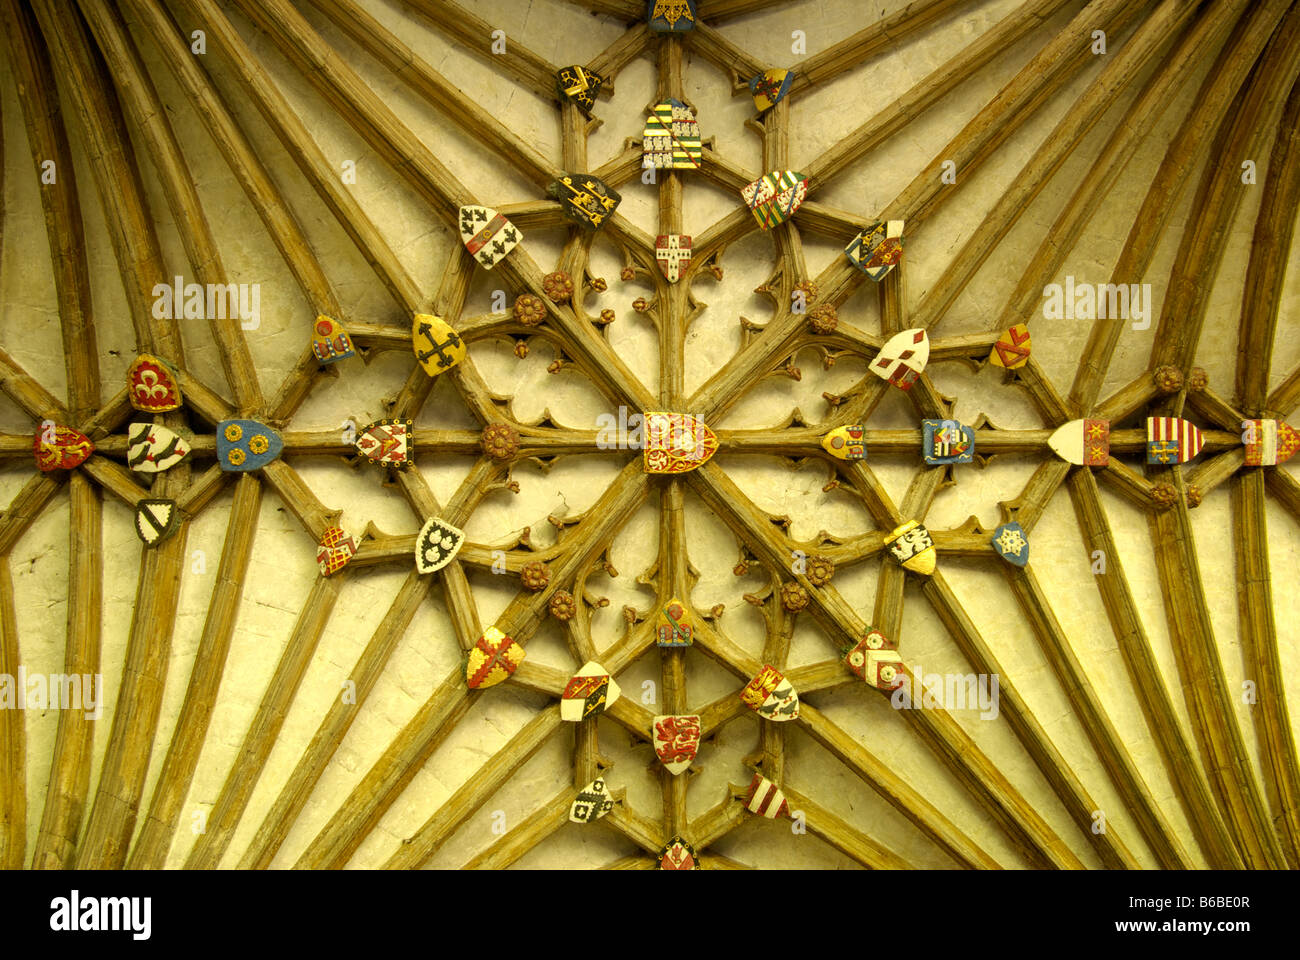 lierne vaulting in the cloister of canterbury cathedral - Stock Image